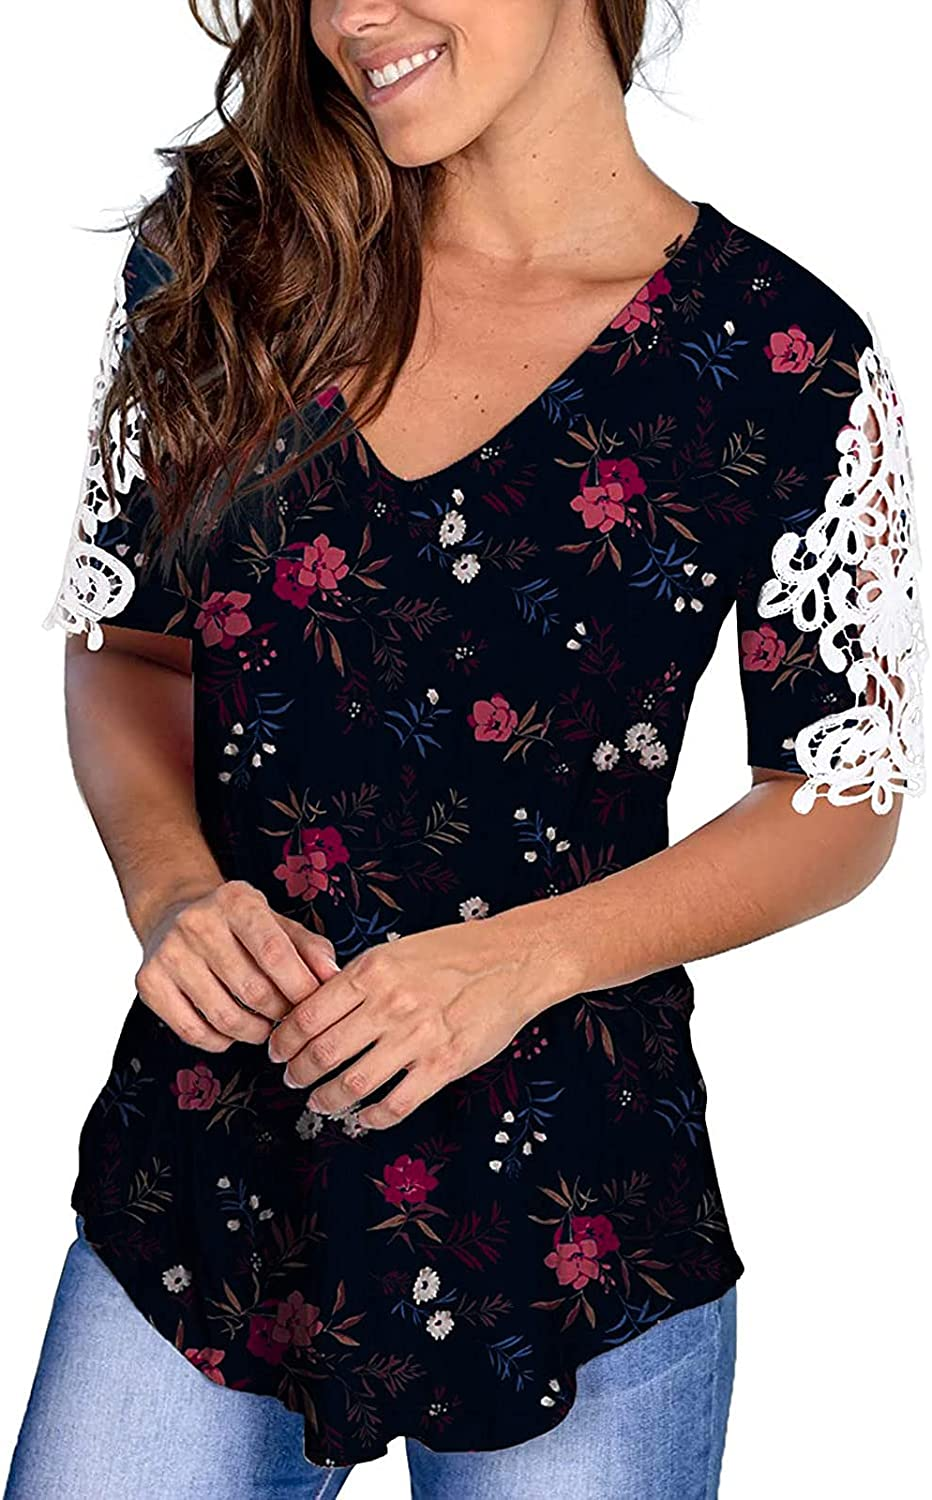 Fudule Summer Tops for Women, Short Sleeve Casual Tee V Neck Floral Blouses Loose Fitting T Shirts Drop Tail Hem Tunic